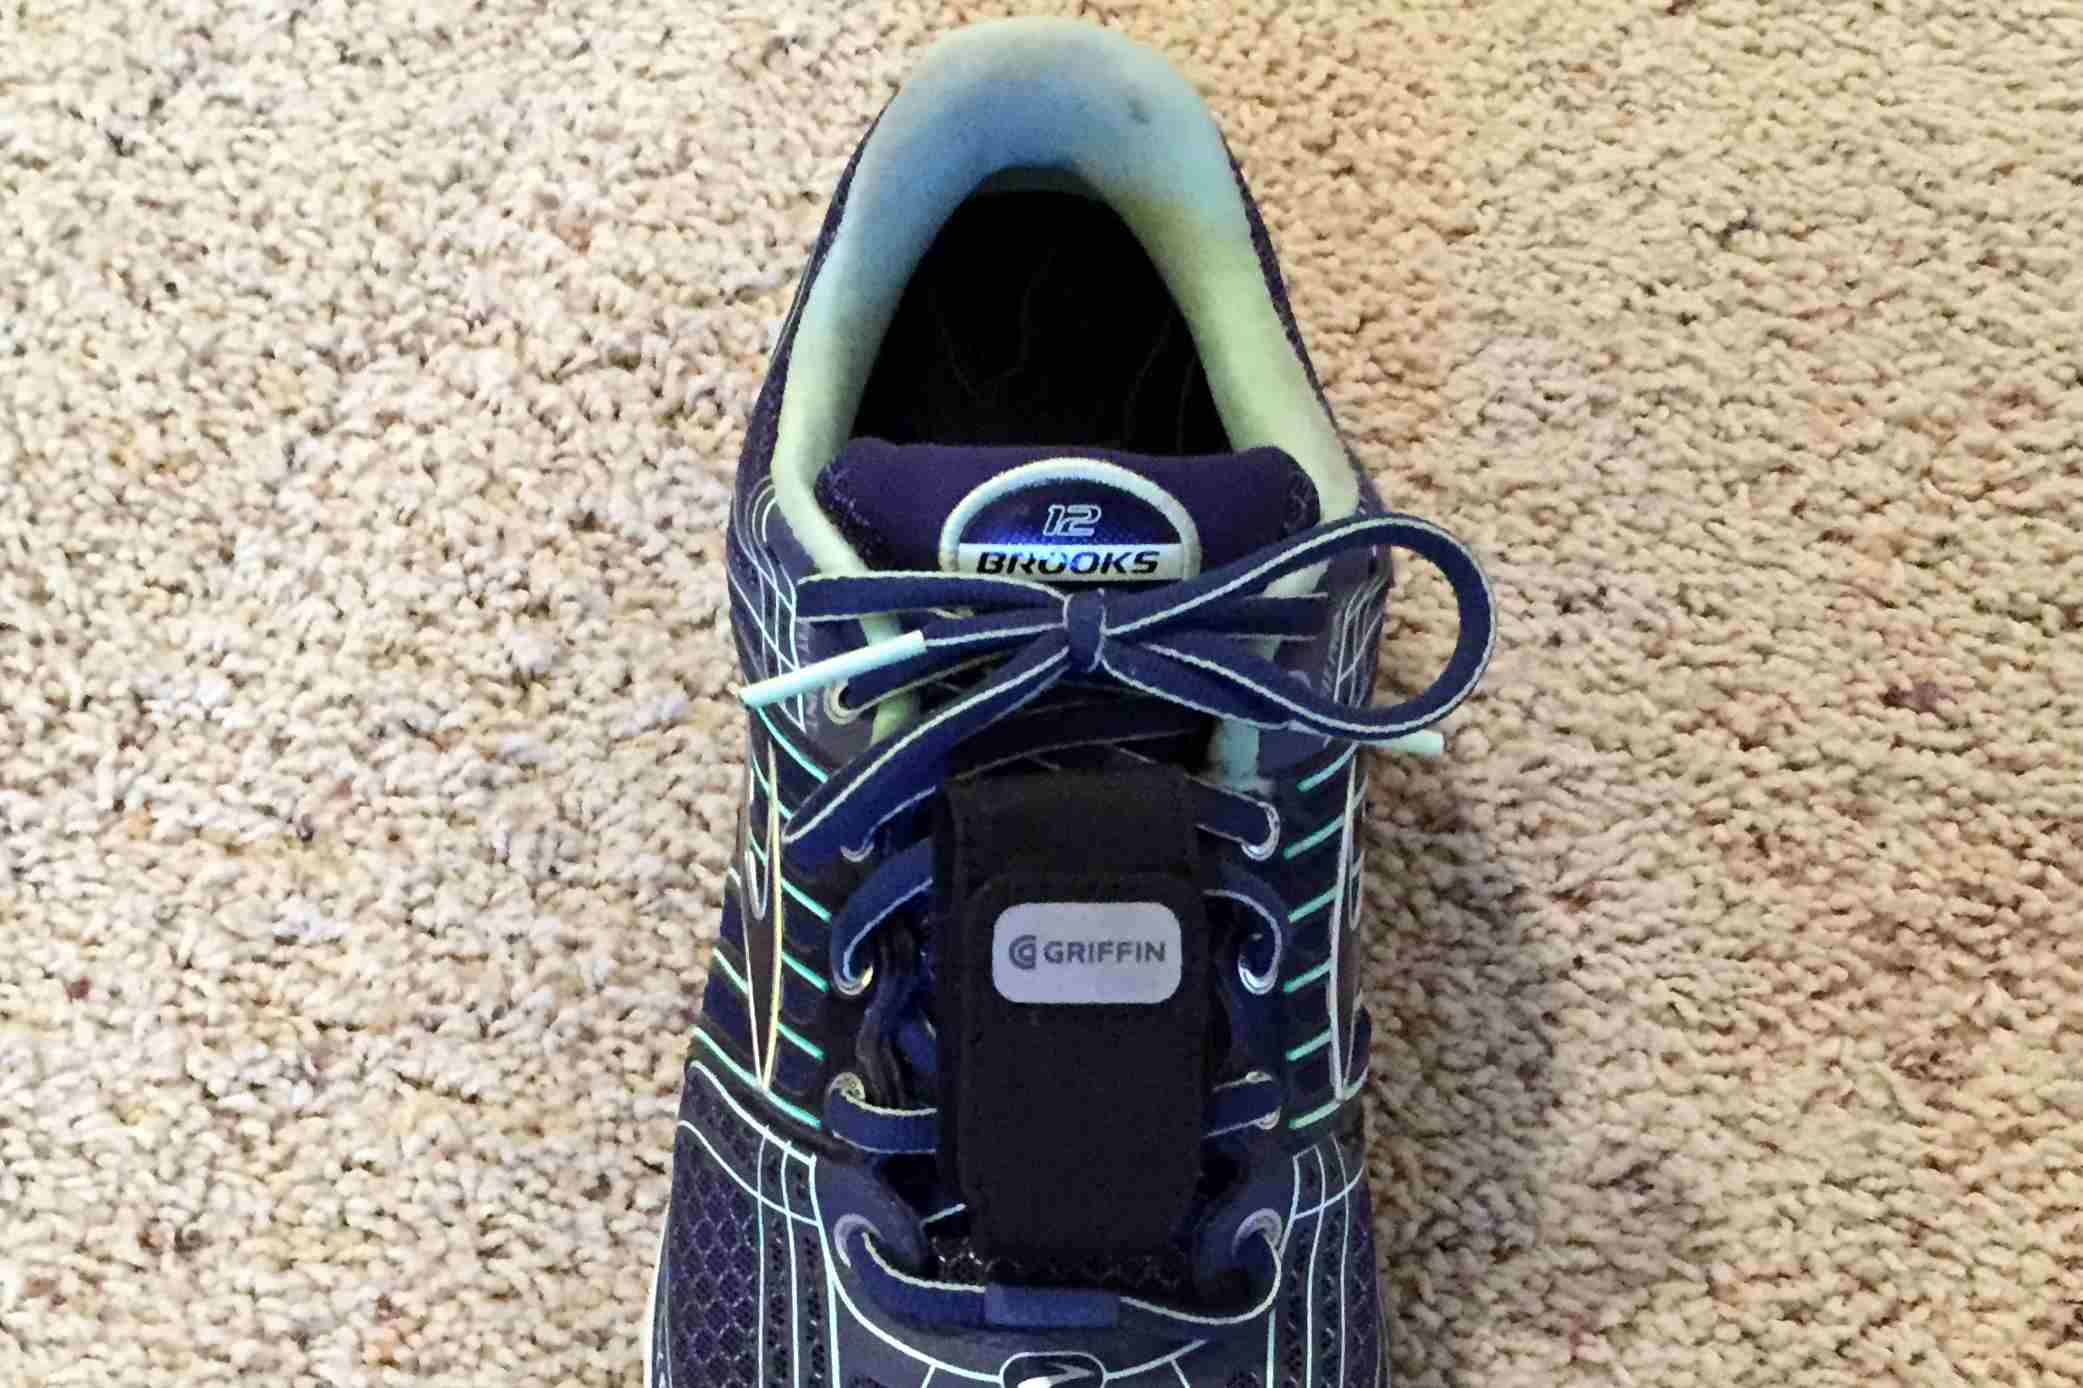 Pouches and Shoes for the Nike Sensor